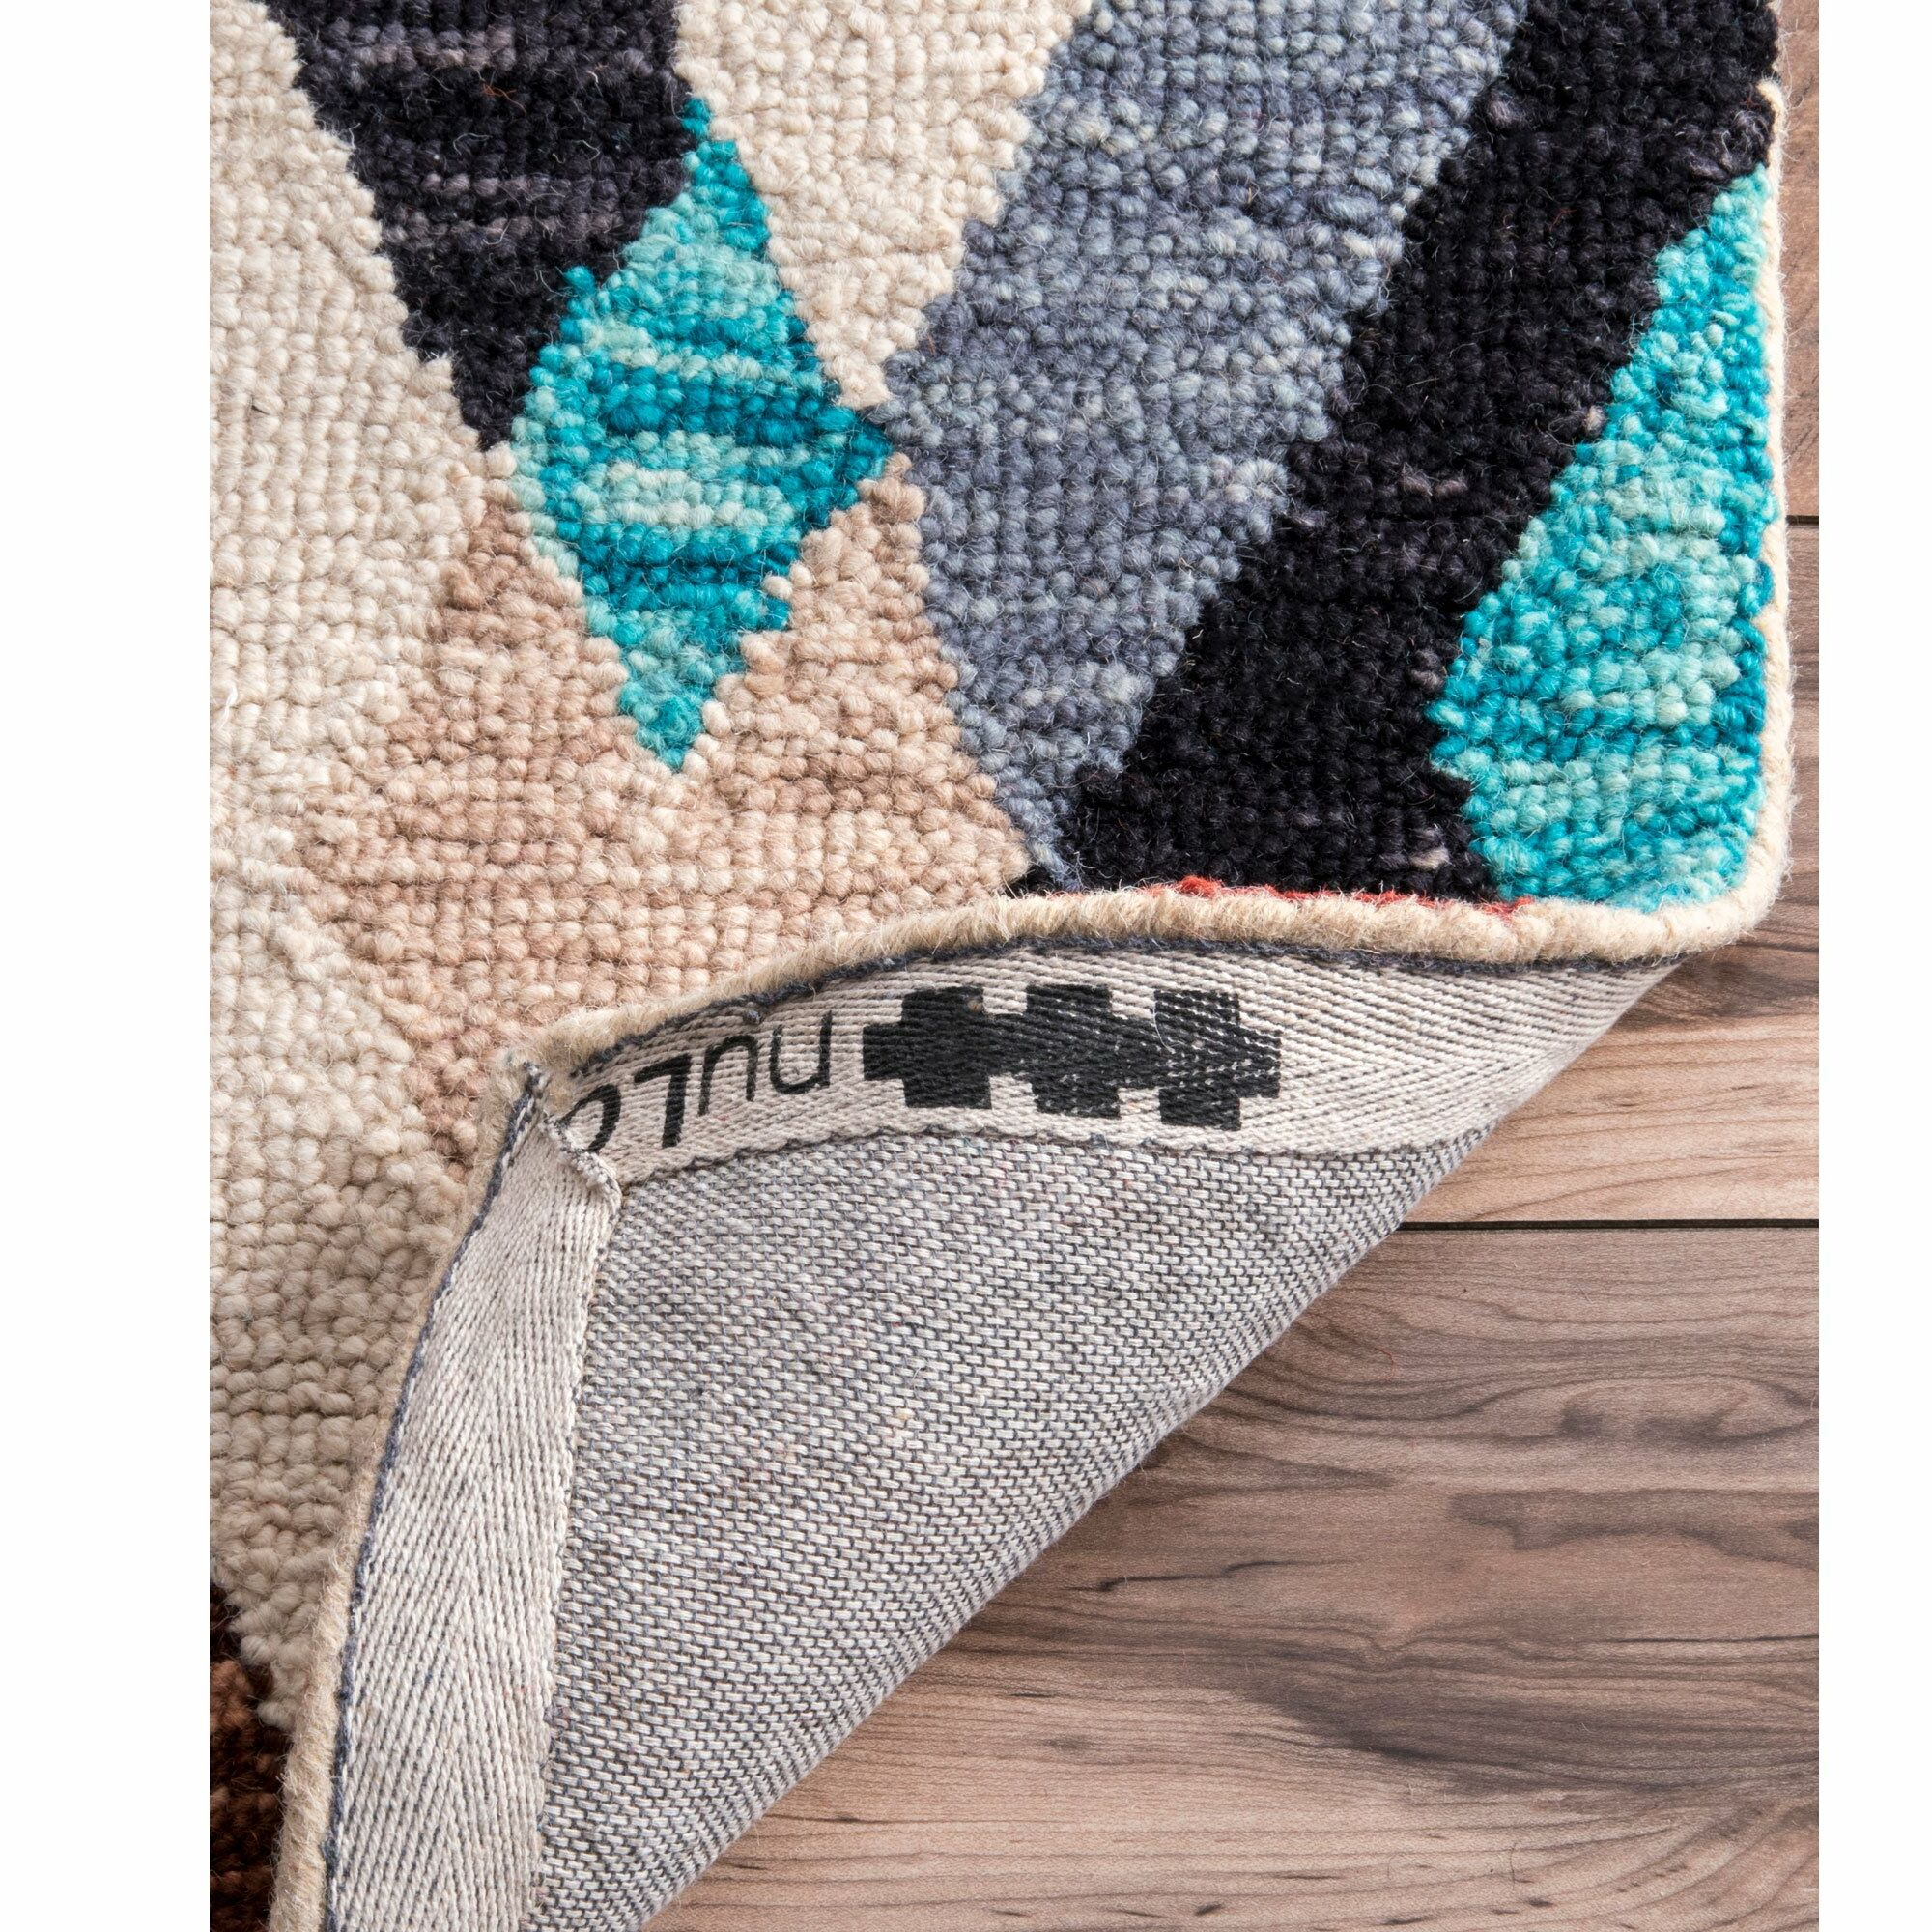 Yarbrough Hand Tufted Wool Blue/Pink/Brown Area Rug Rug Size: Rectangle 7'6